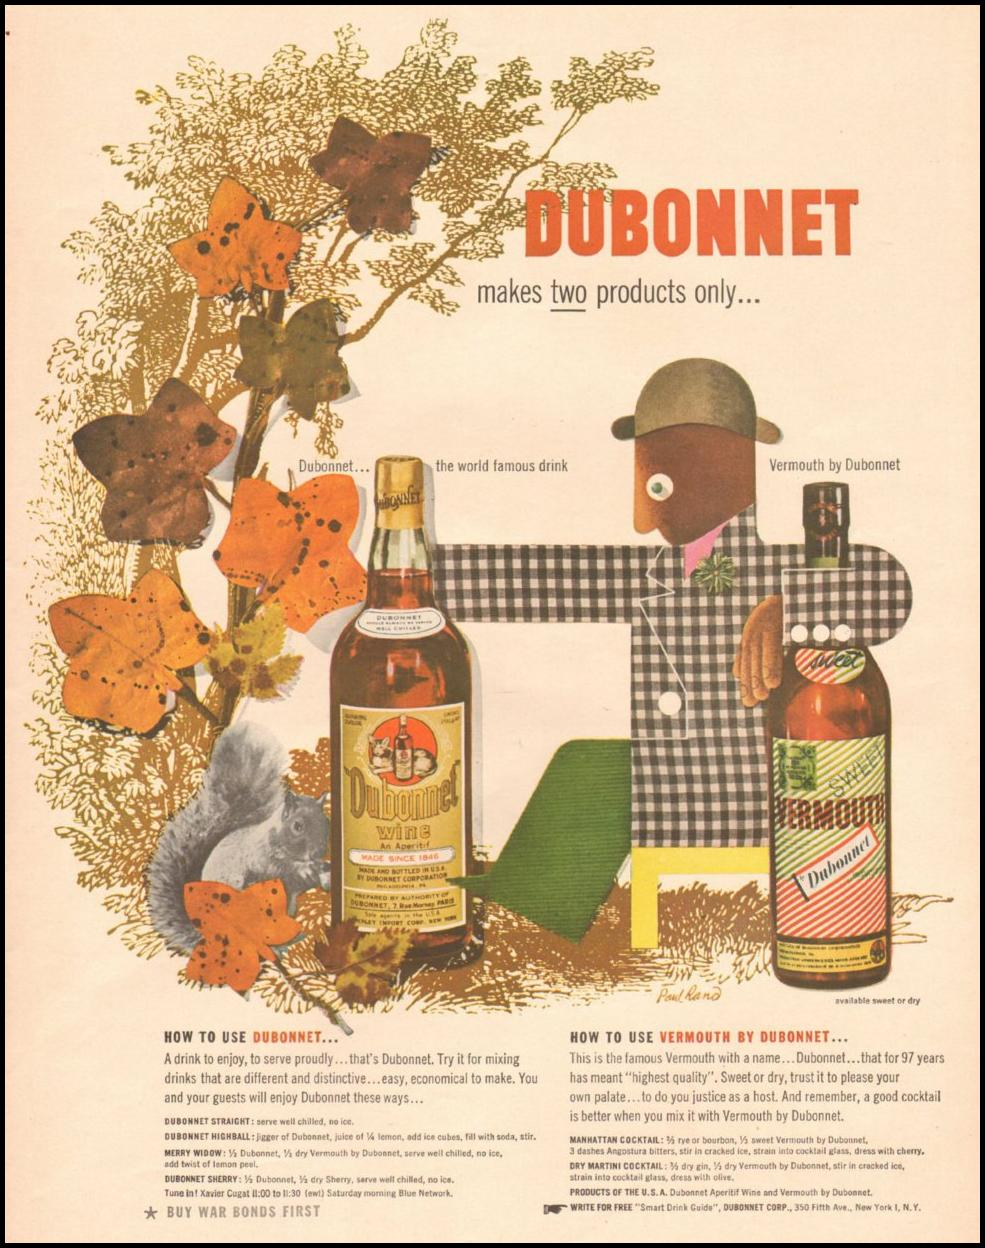 DUBONNET WINE AND VERMOUTH LIFE 10/25/1943